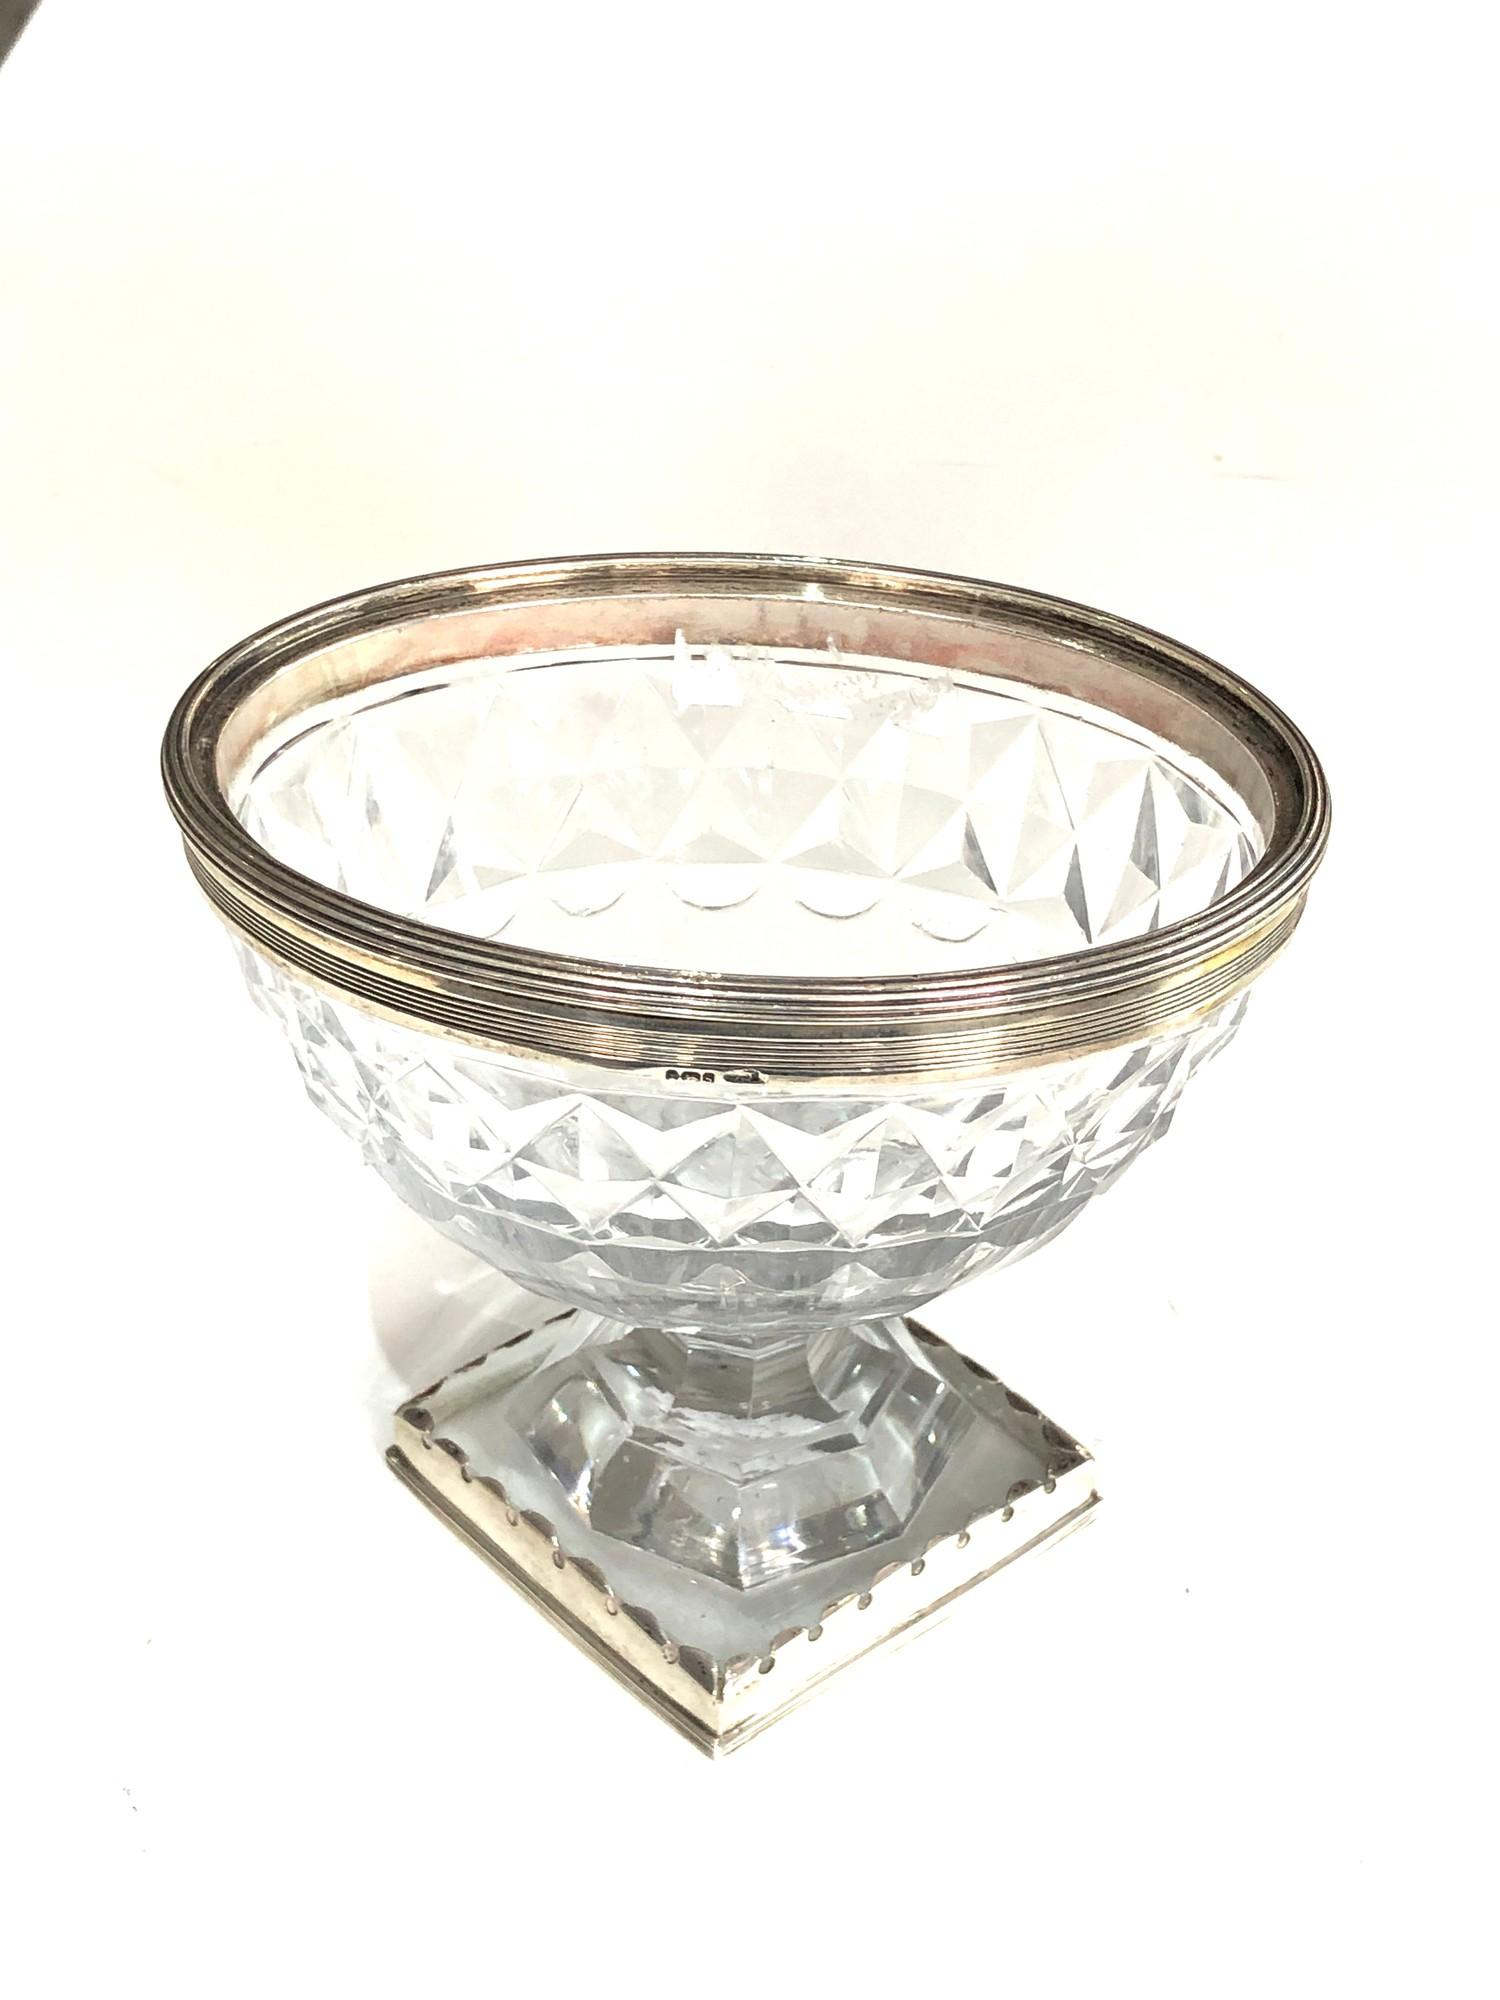 Antique georgian silver mounted cut glass sweetmeat vase later silver mount to base measures